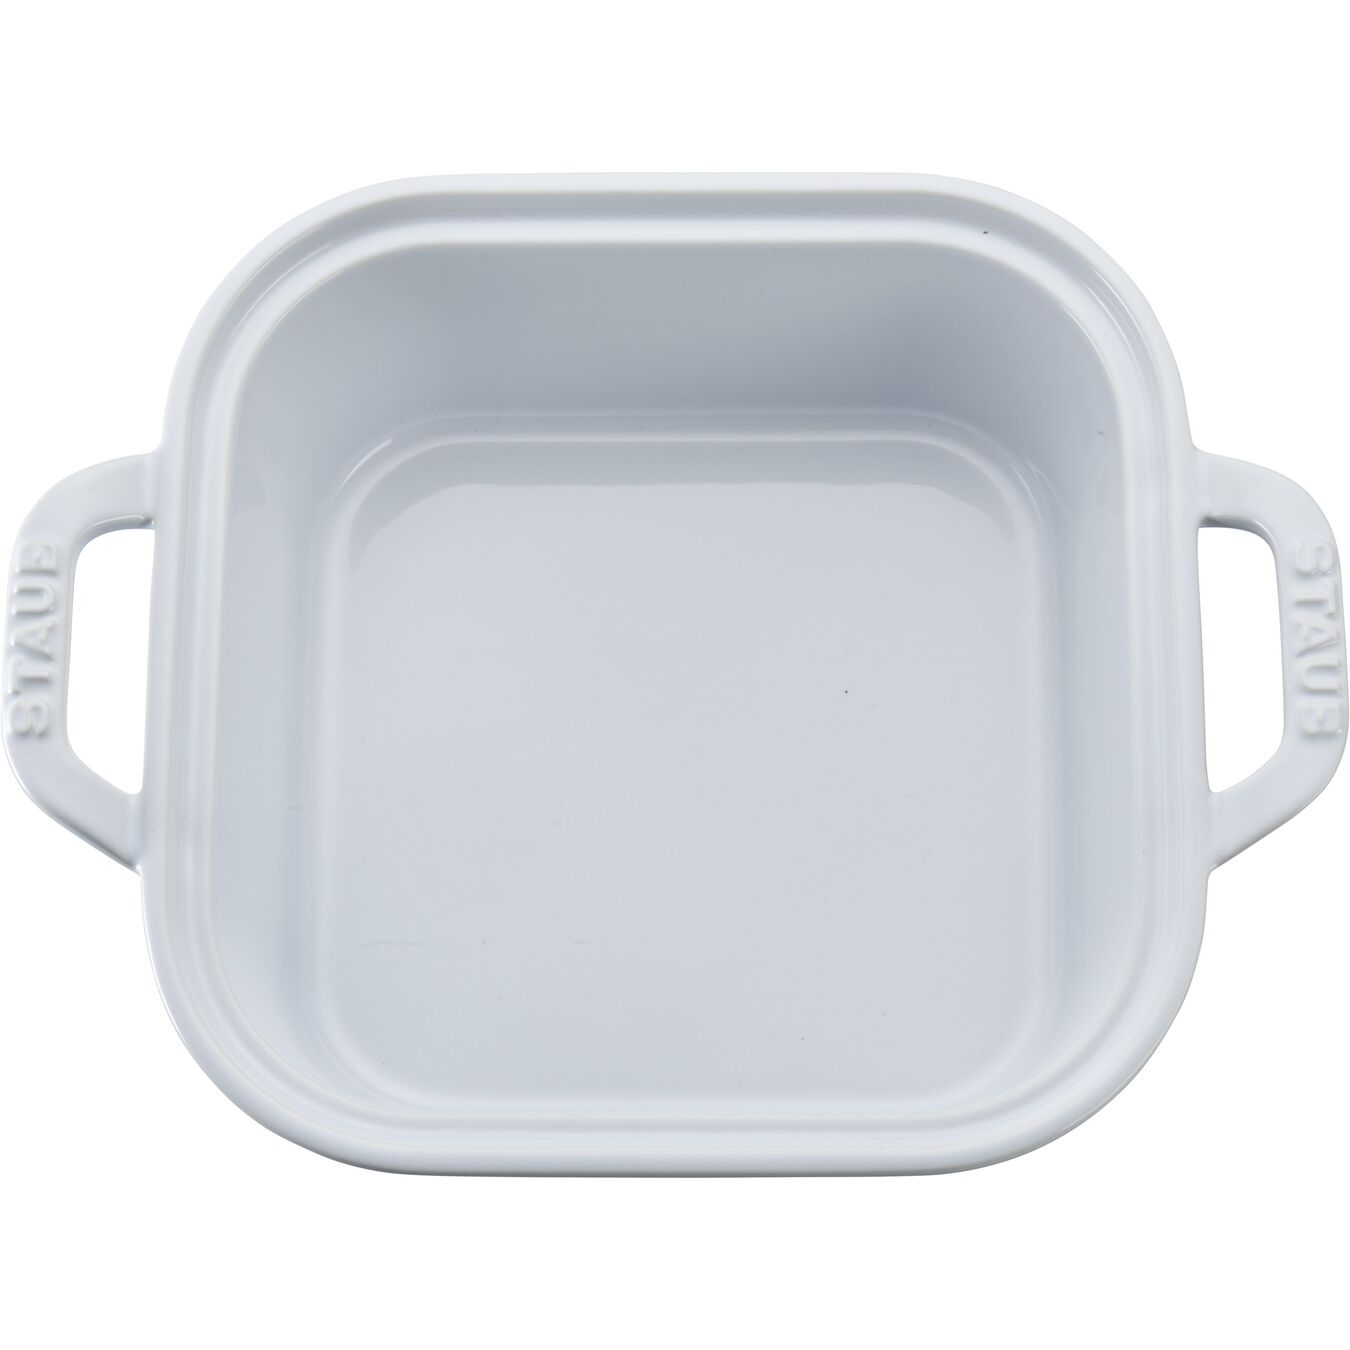 9-inch, square, Special shape bakeware, white,,large 6